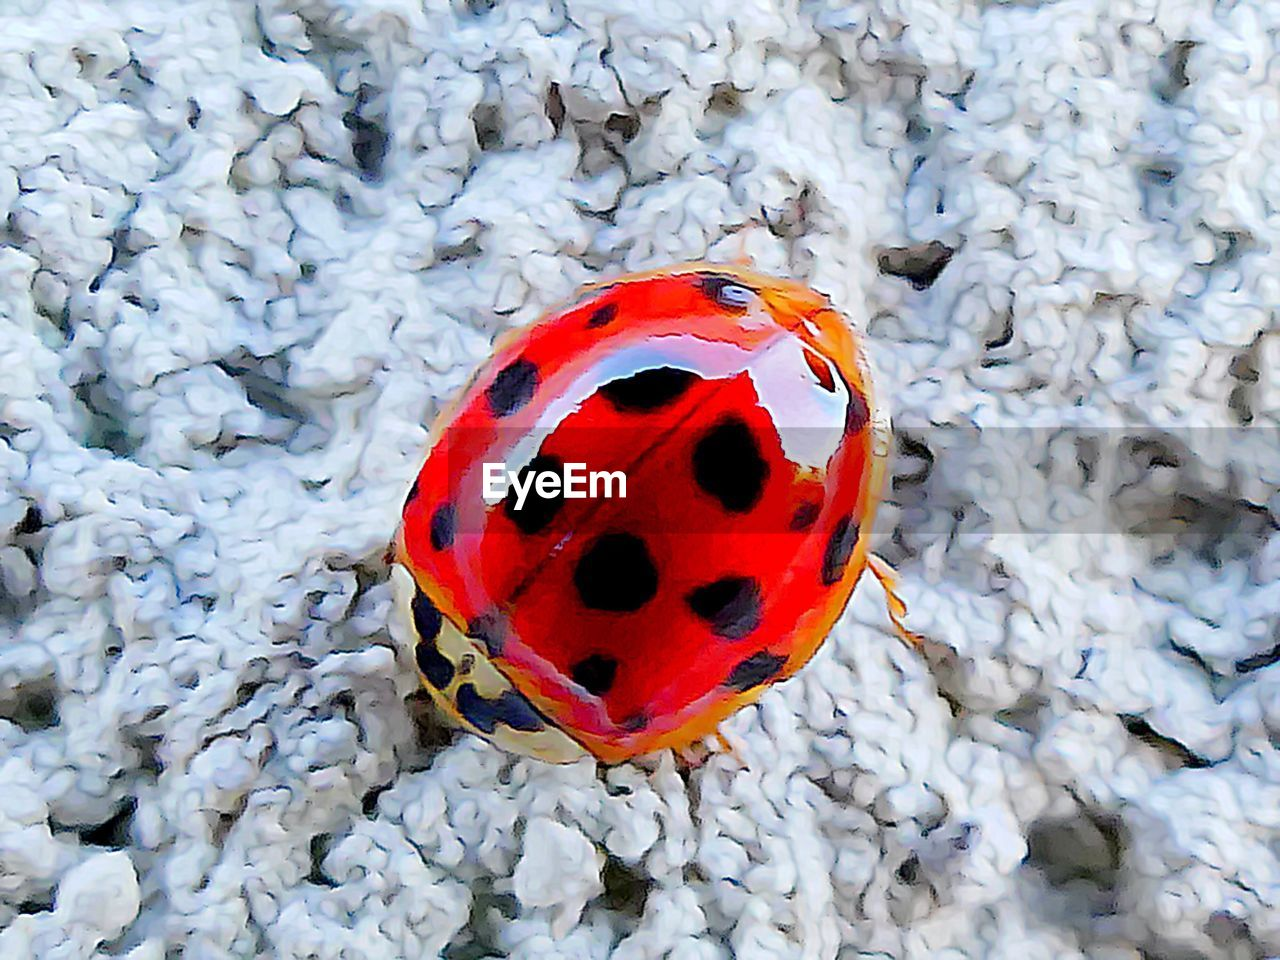 ladybug, insect, spotted, no people, animals in the wild, close-up, one animal, high angle view, red, tiny, animal themes, day, outdoors